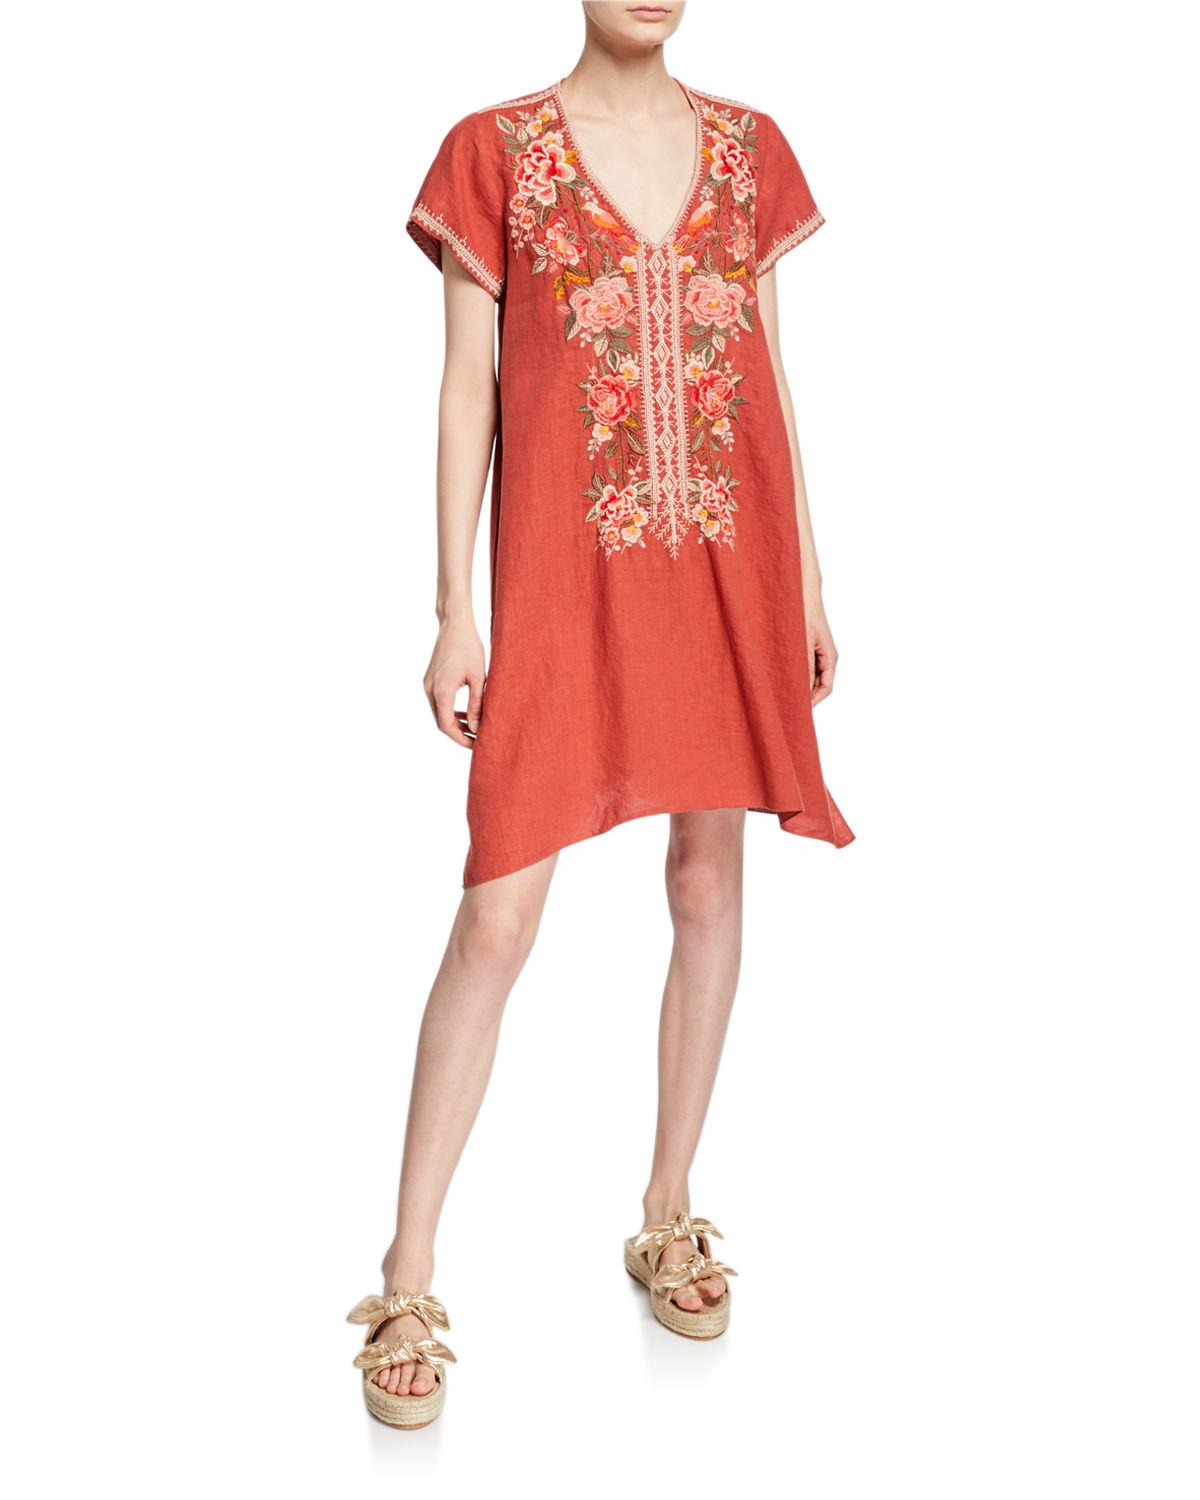 Johnny Was Dresses PAOLA FLORAL EMBROIDERED SHORT-SLEEVE DRAPED LINEN TUNIC DRESS